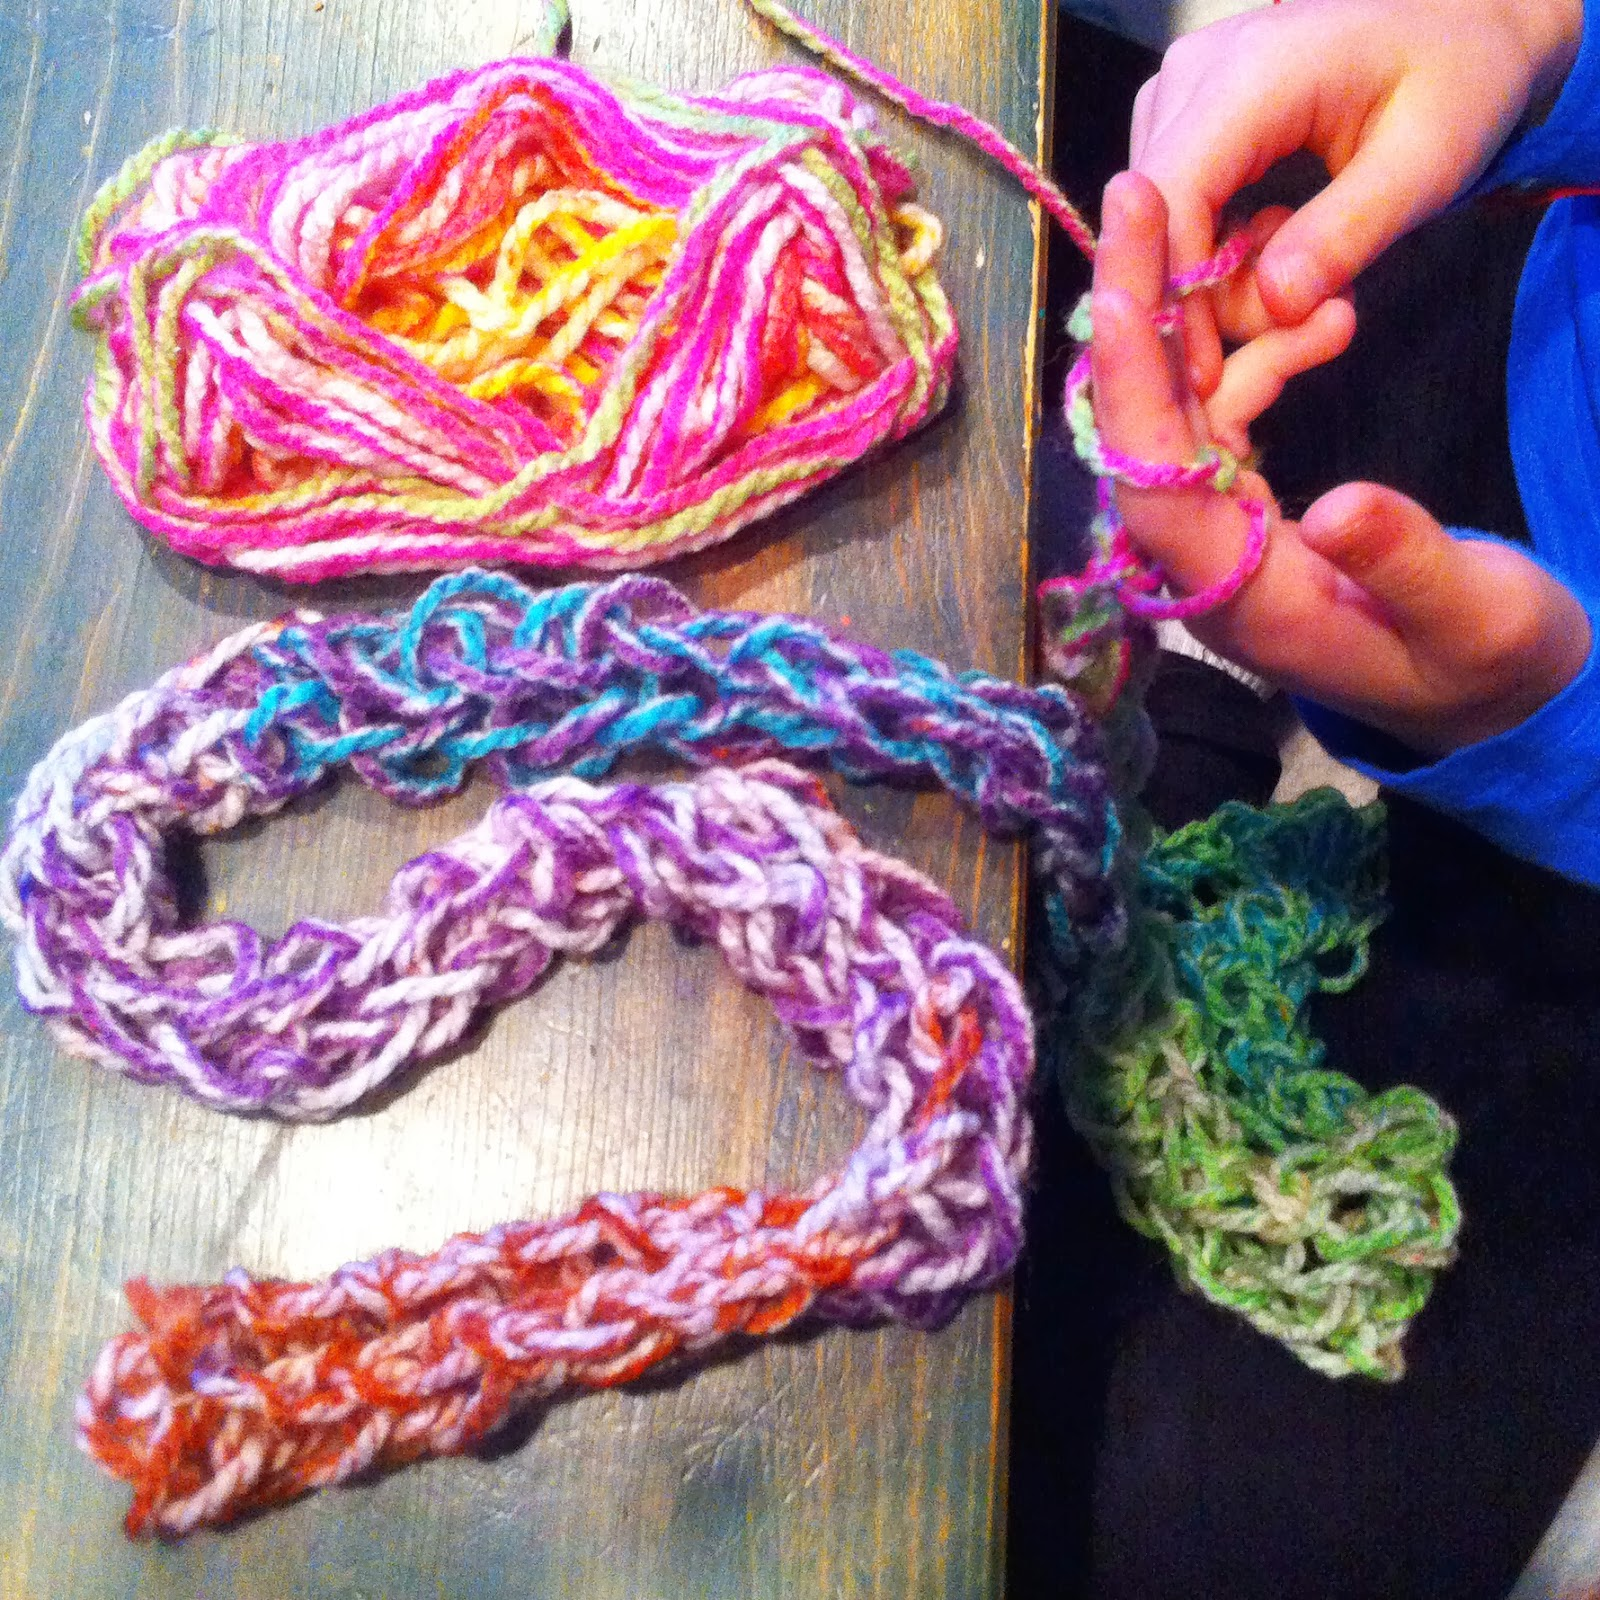 Lil O finger knitting taught at her Montessori school